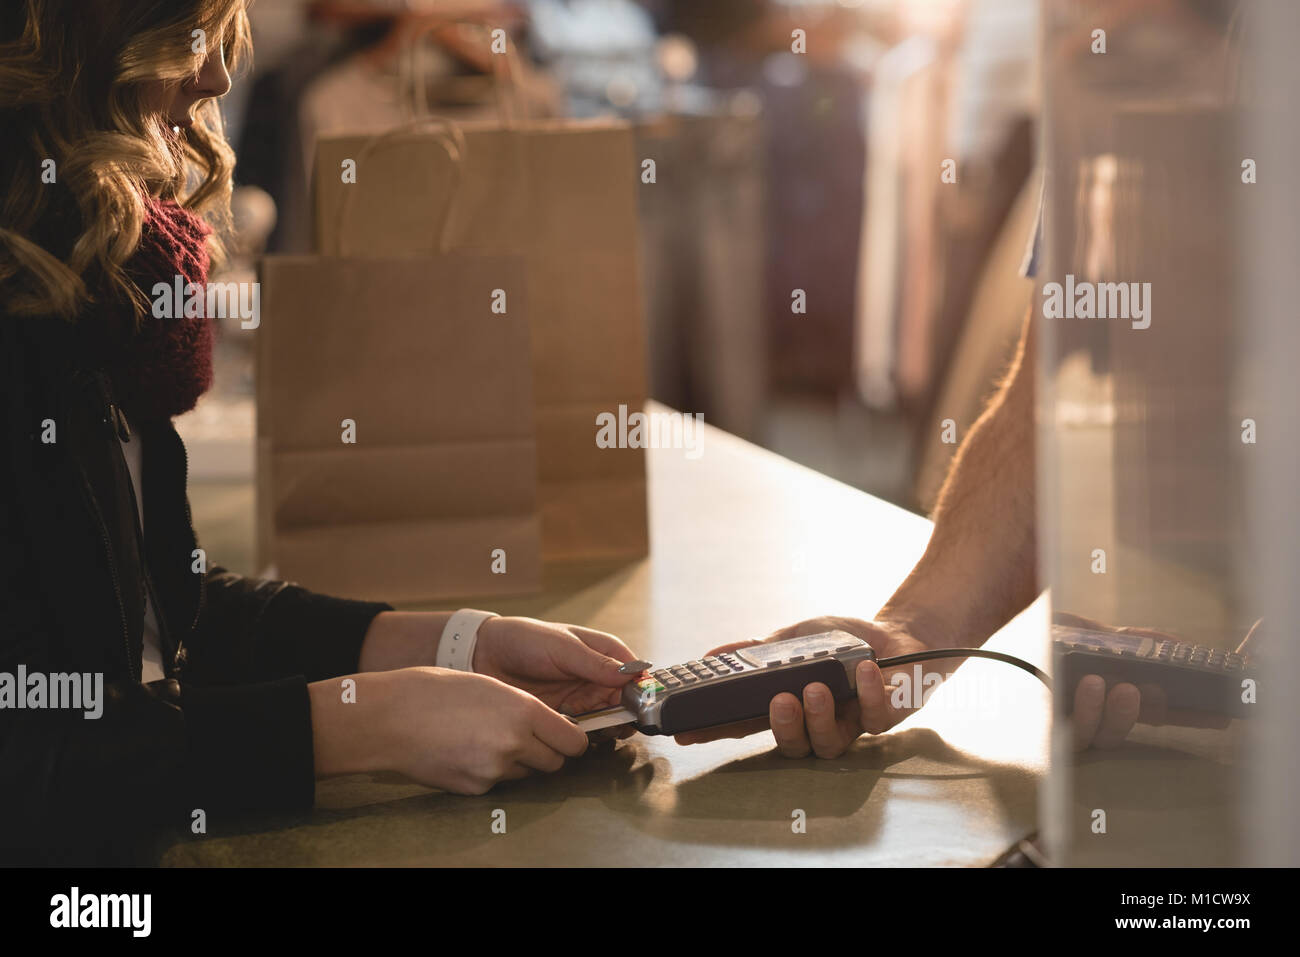 Woman making payment through mobile phone - Stock Image